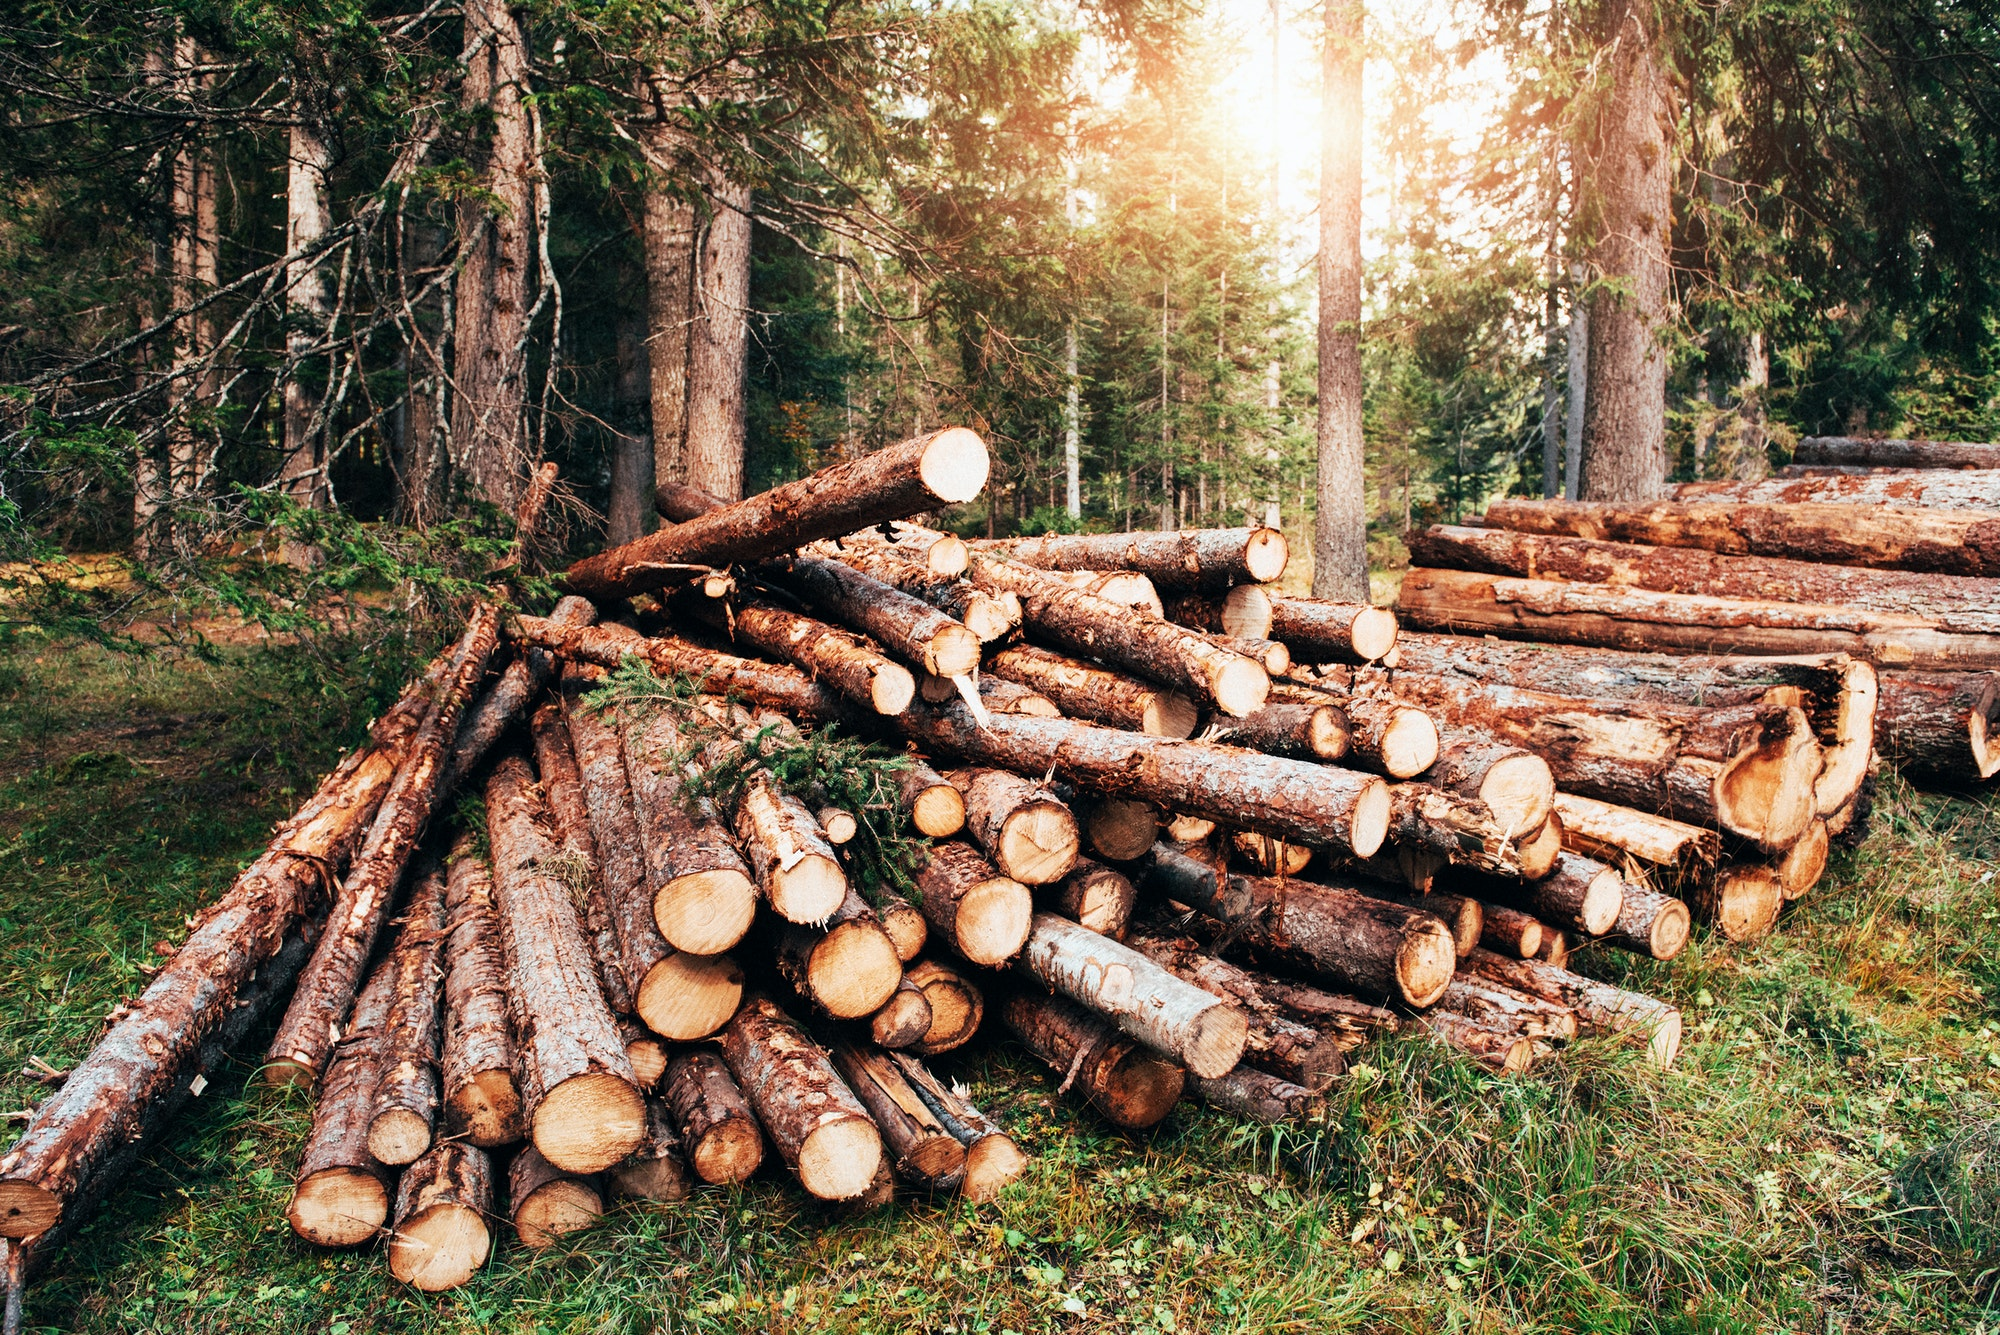 Sunlight through the trees. Freshly harvested wooden logs stacked in a pile in the green forest